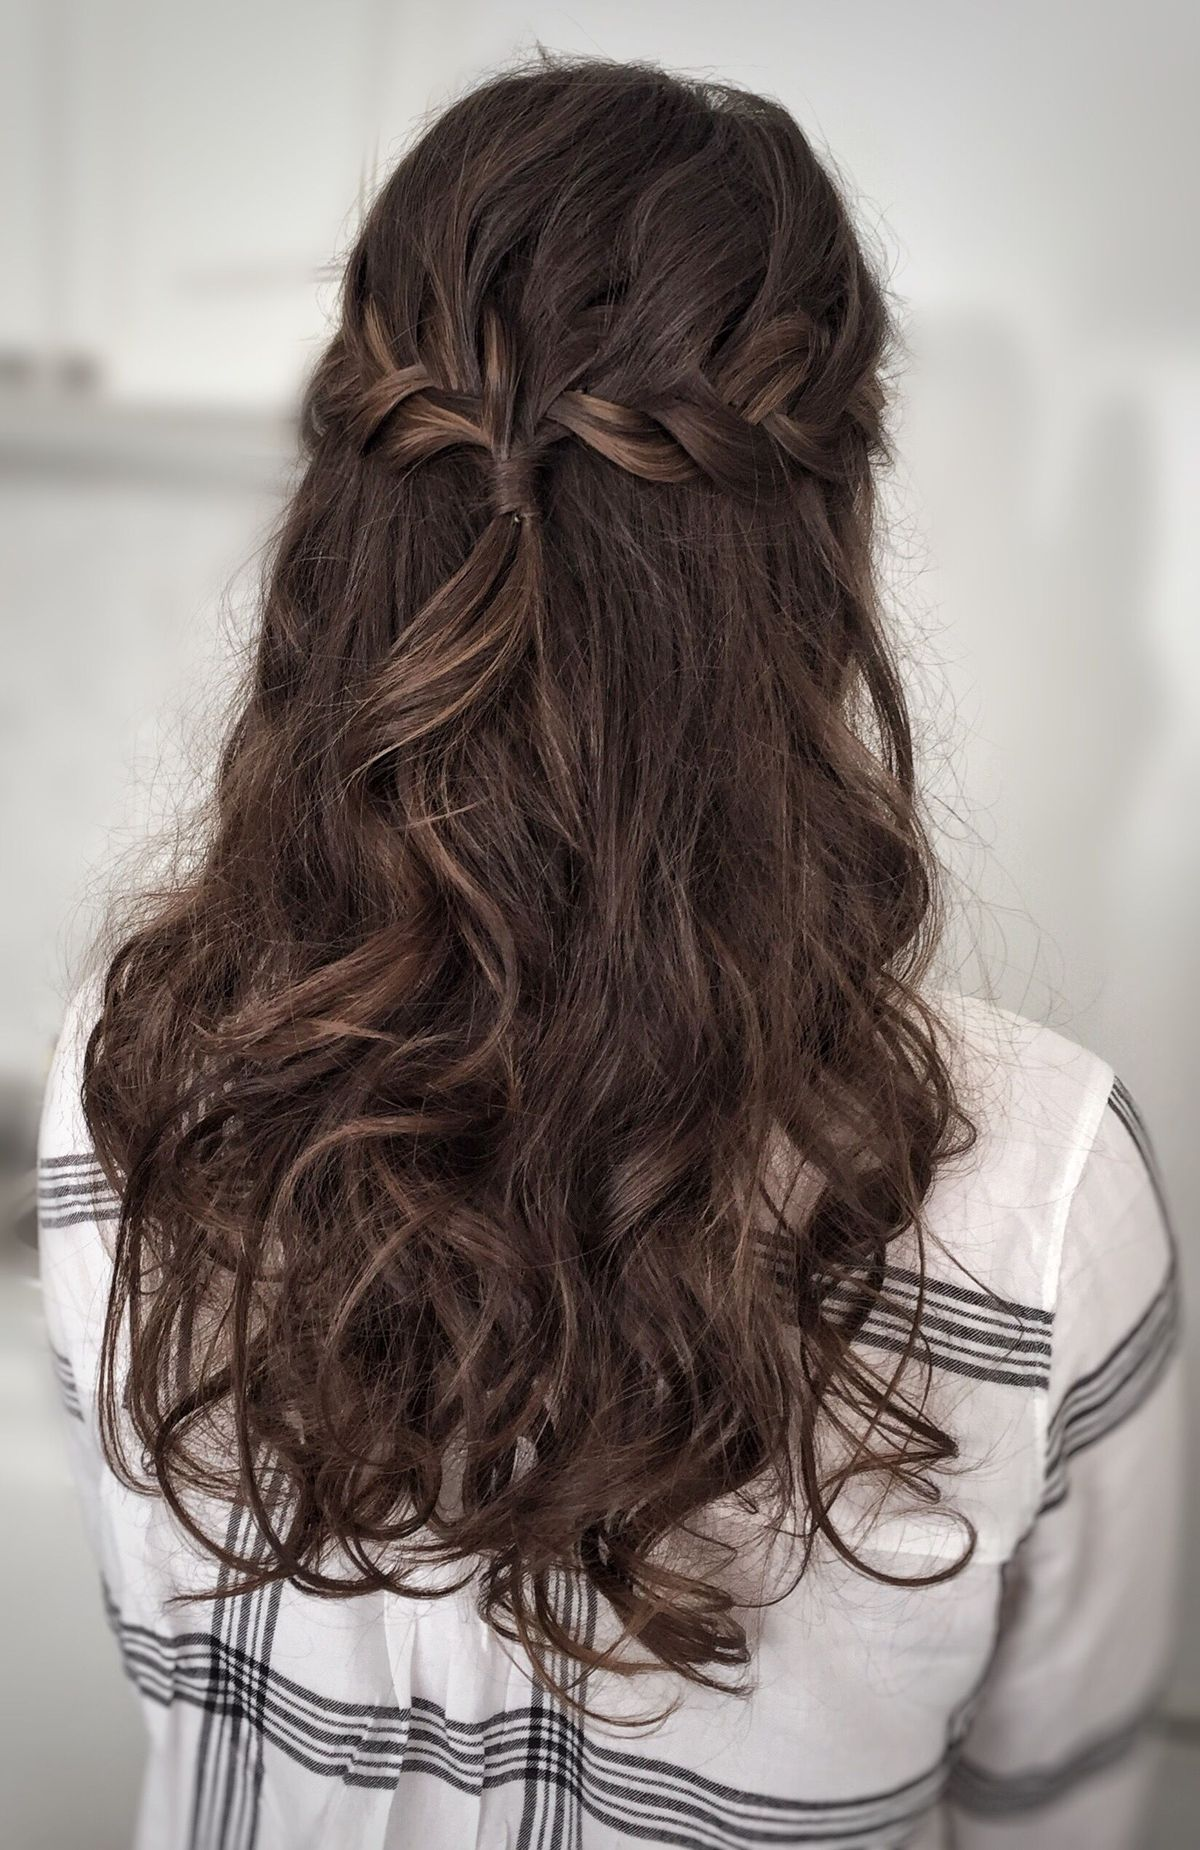 Prom Hair #promhairstyles